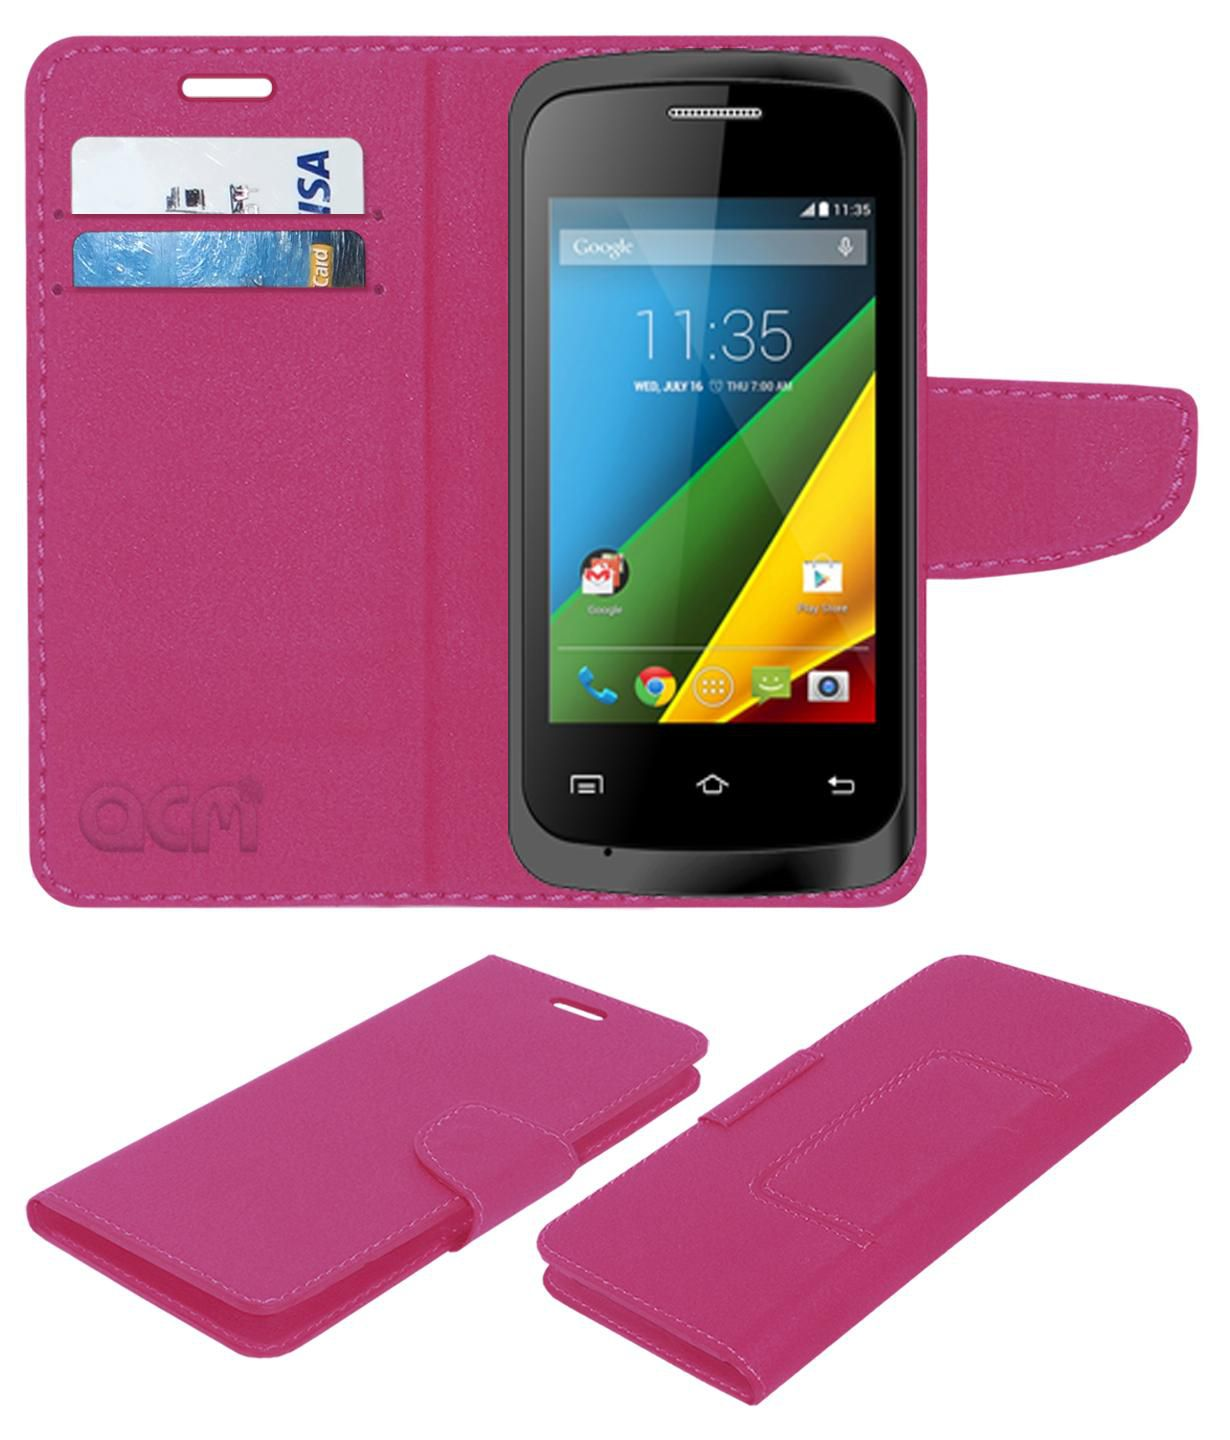 Bloom Globe B35 Flip Cover by ACM - Pink